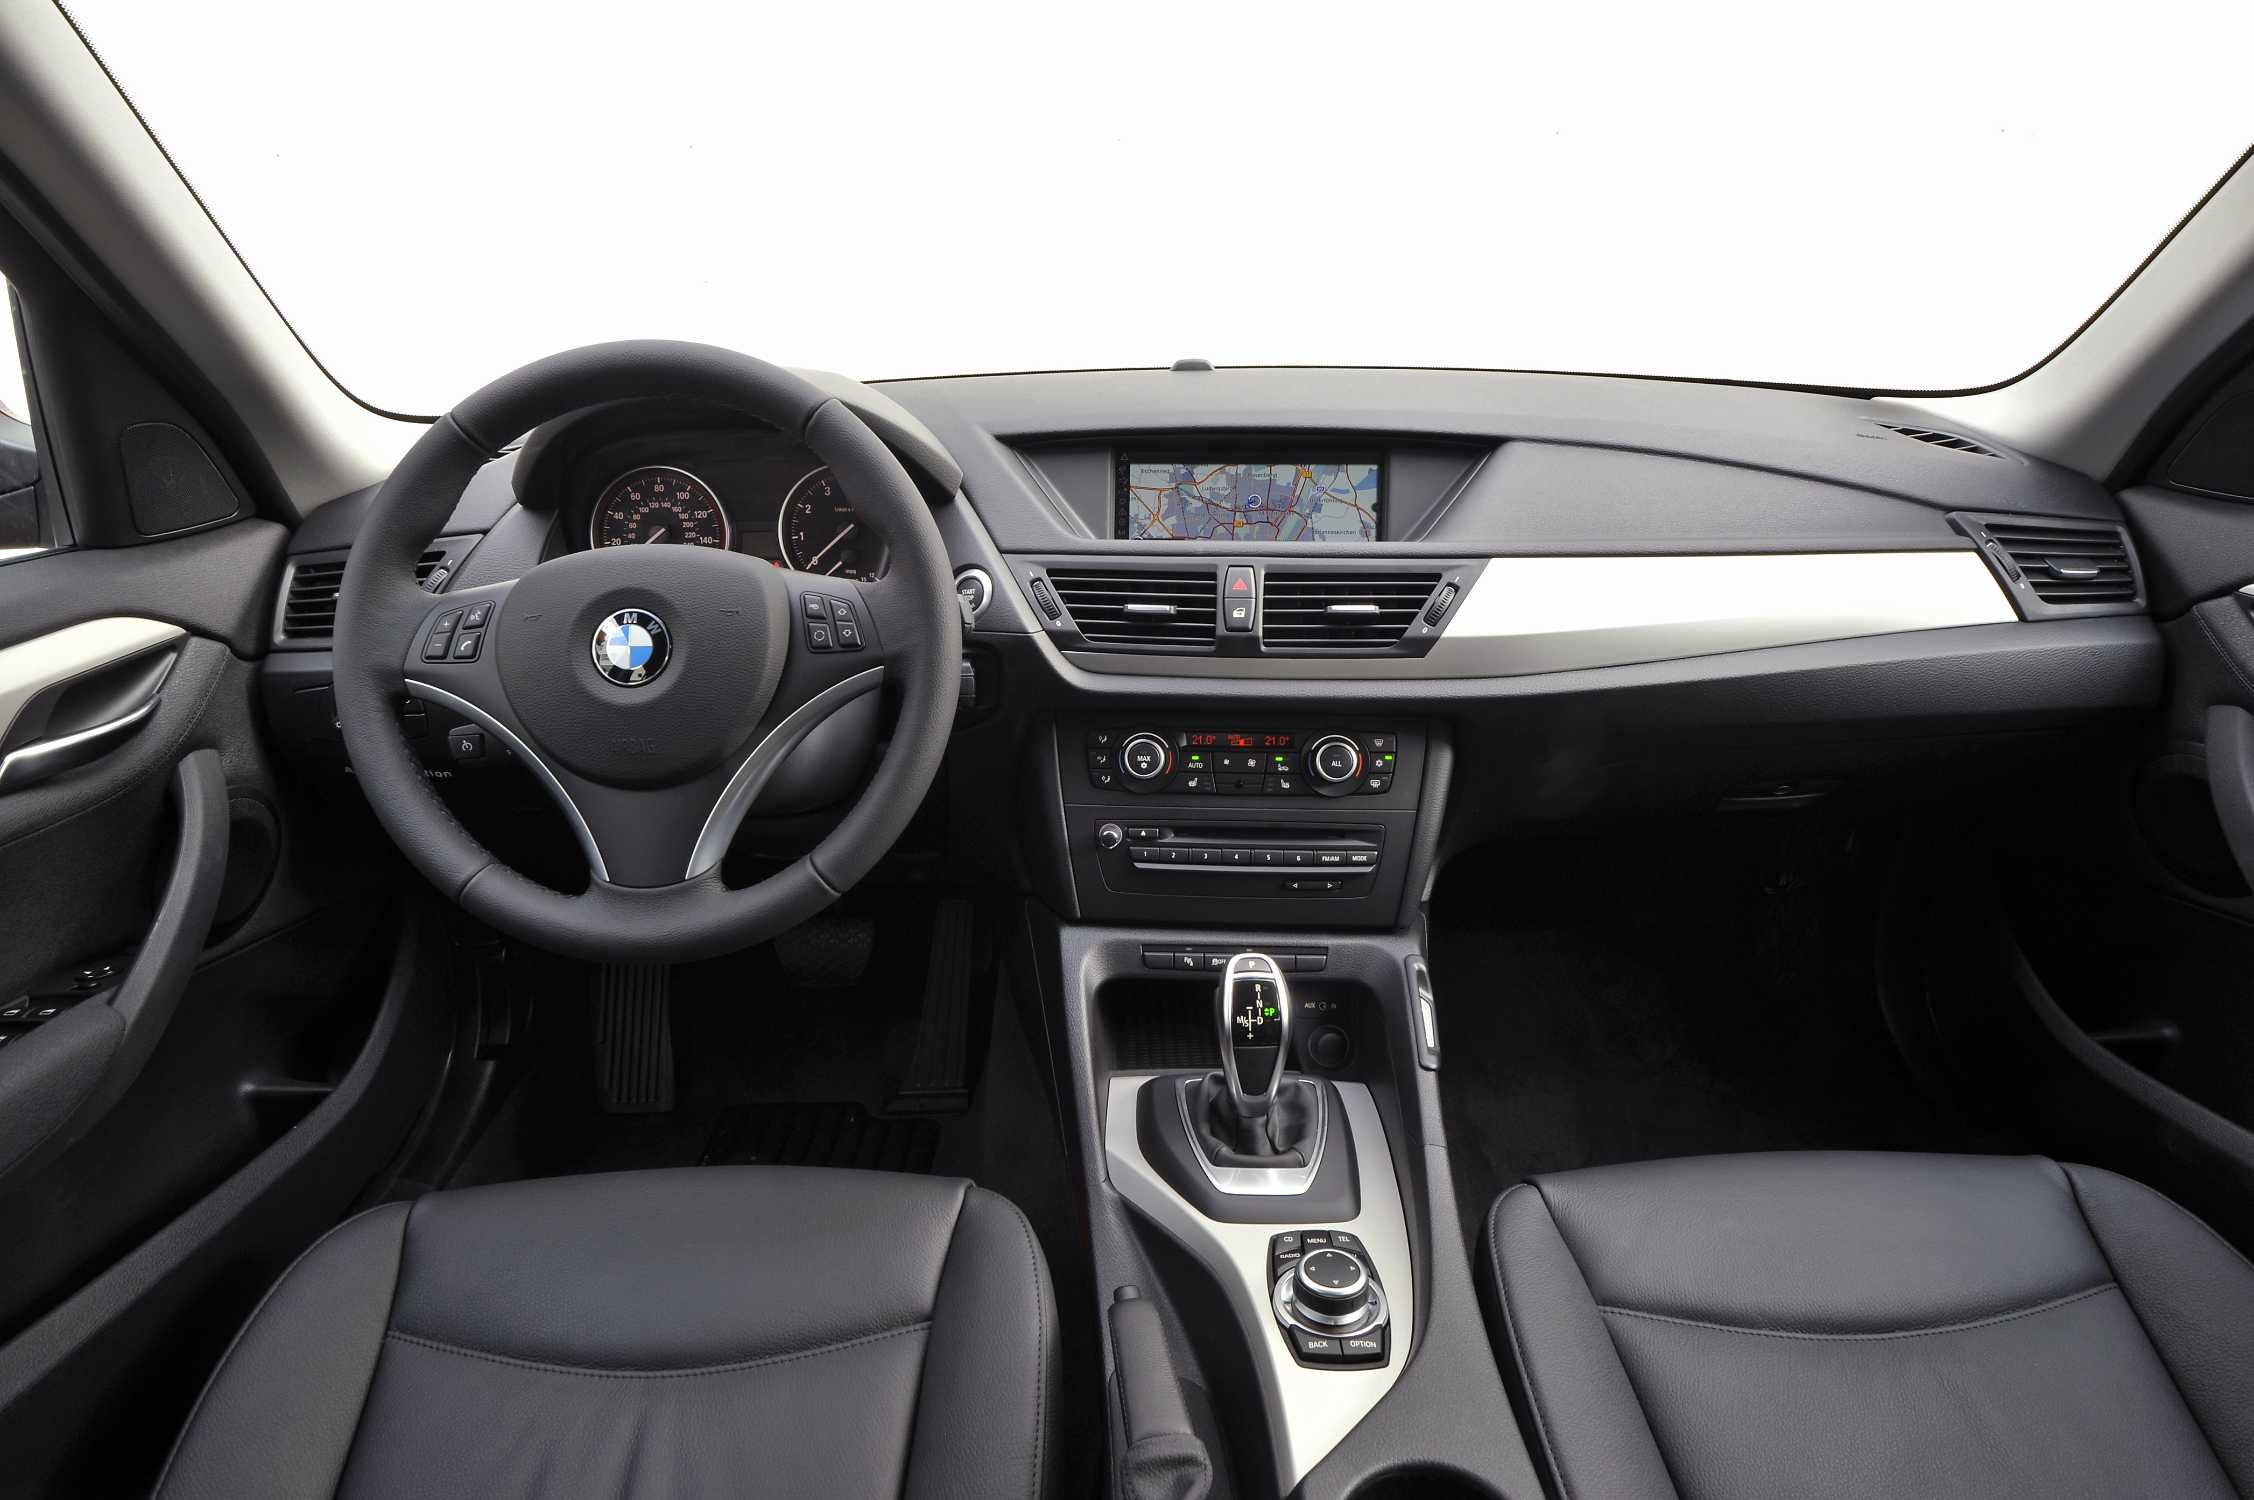 The new BMW X1 xDrive28i with 8Speed Automatic transmission 012011